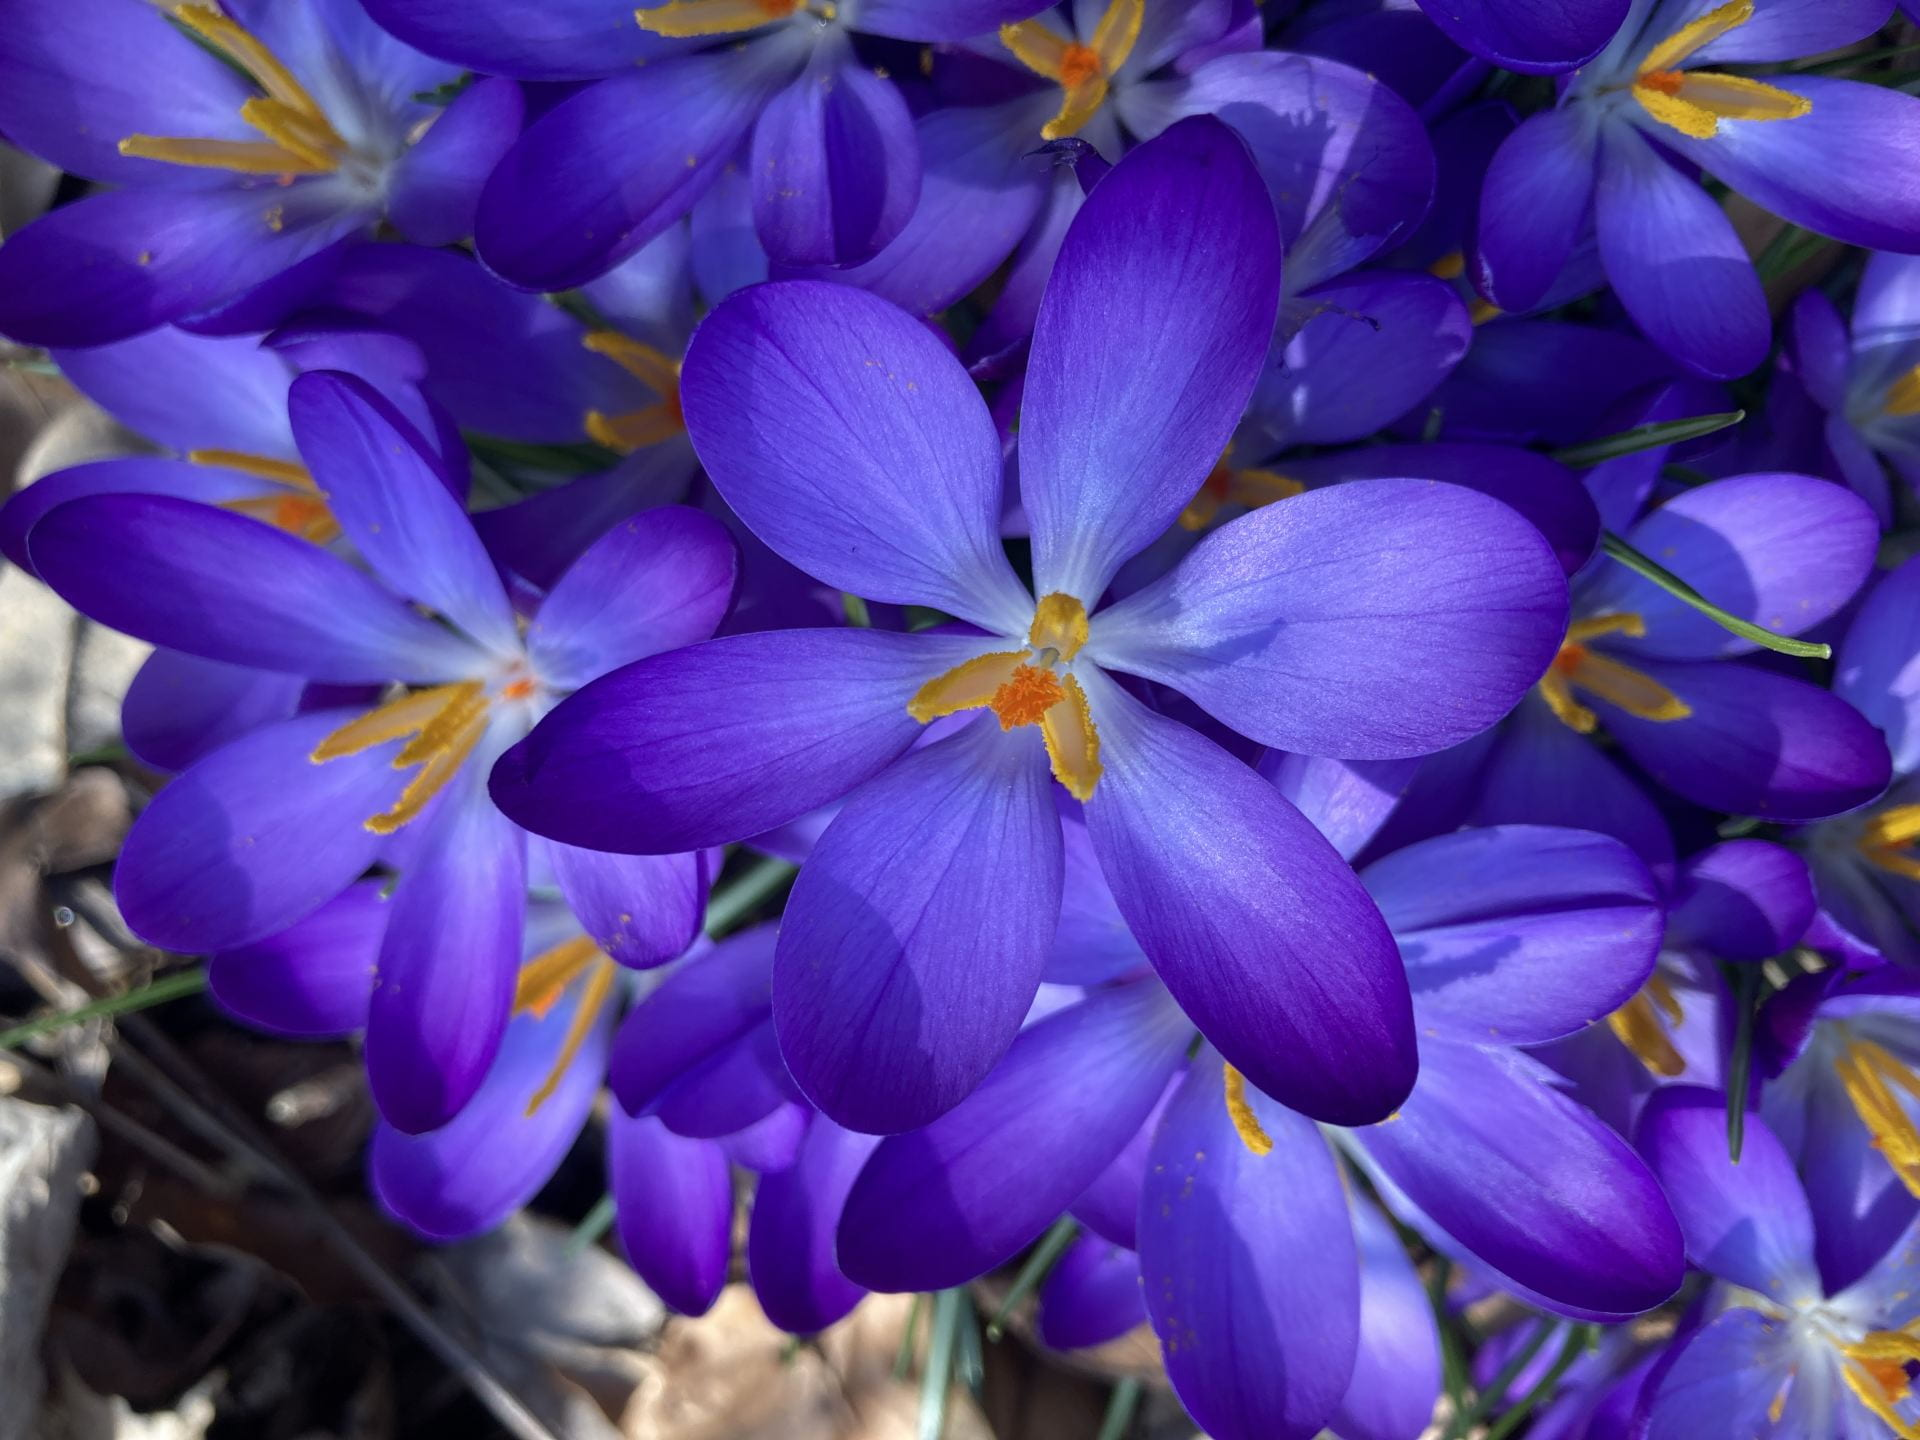 They may be small, but these Crocus certainly command attention.